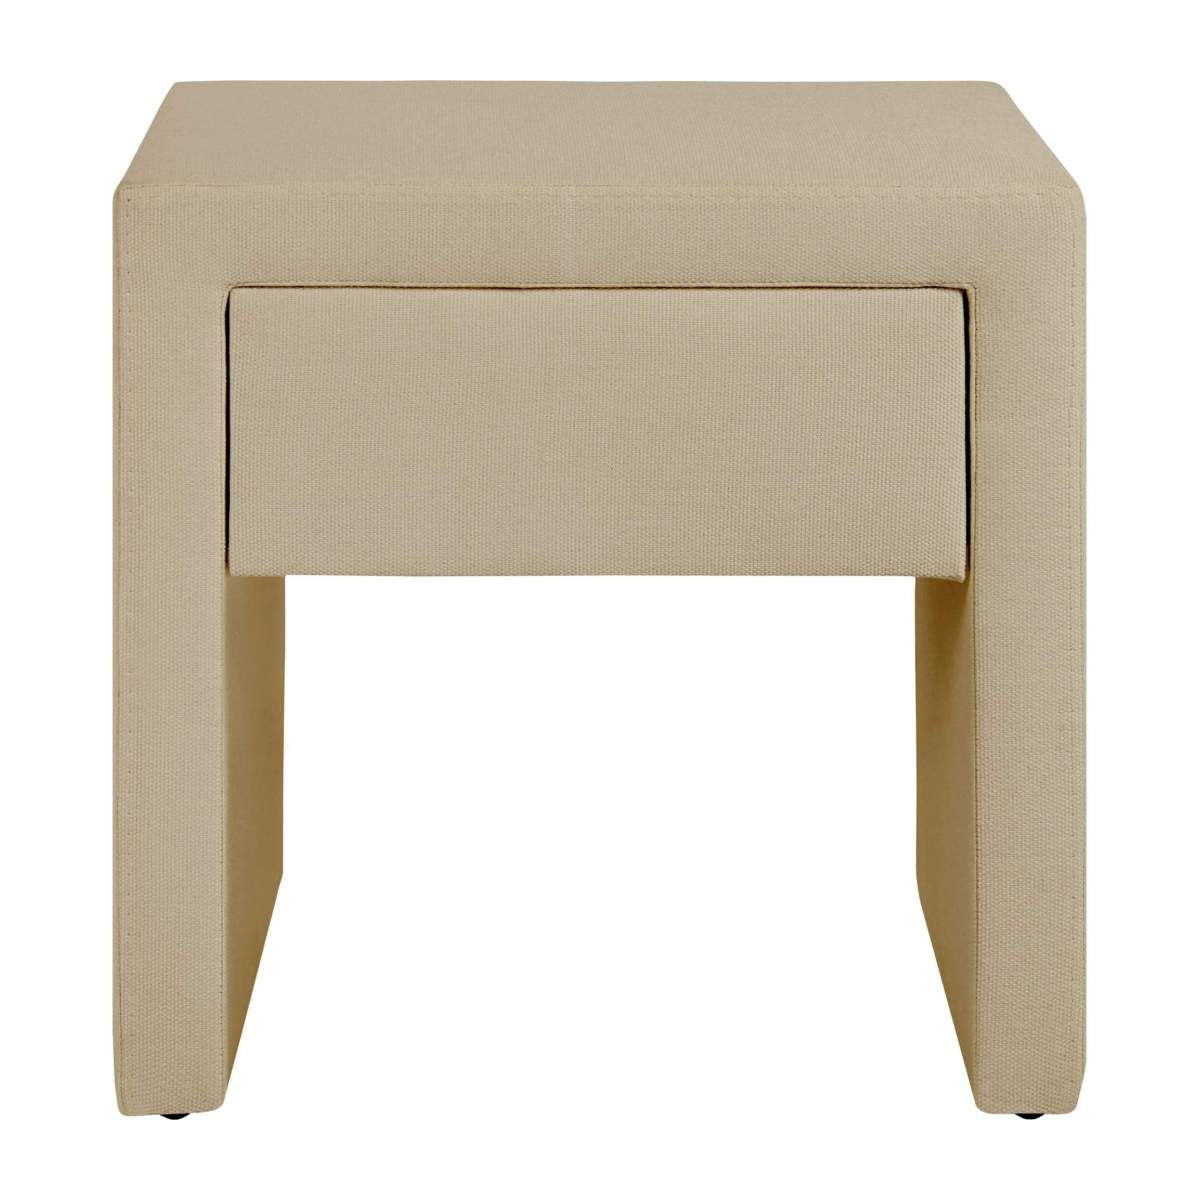 Fabric bedside table n°2